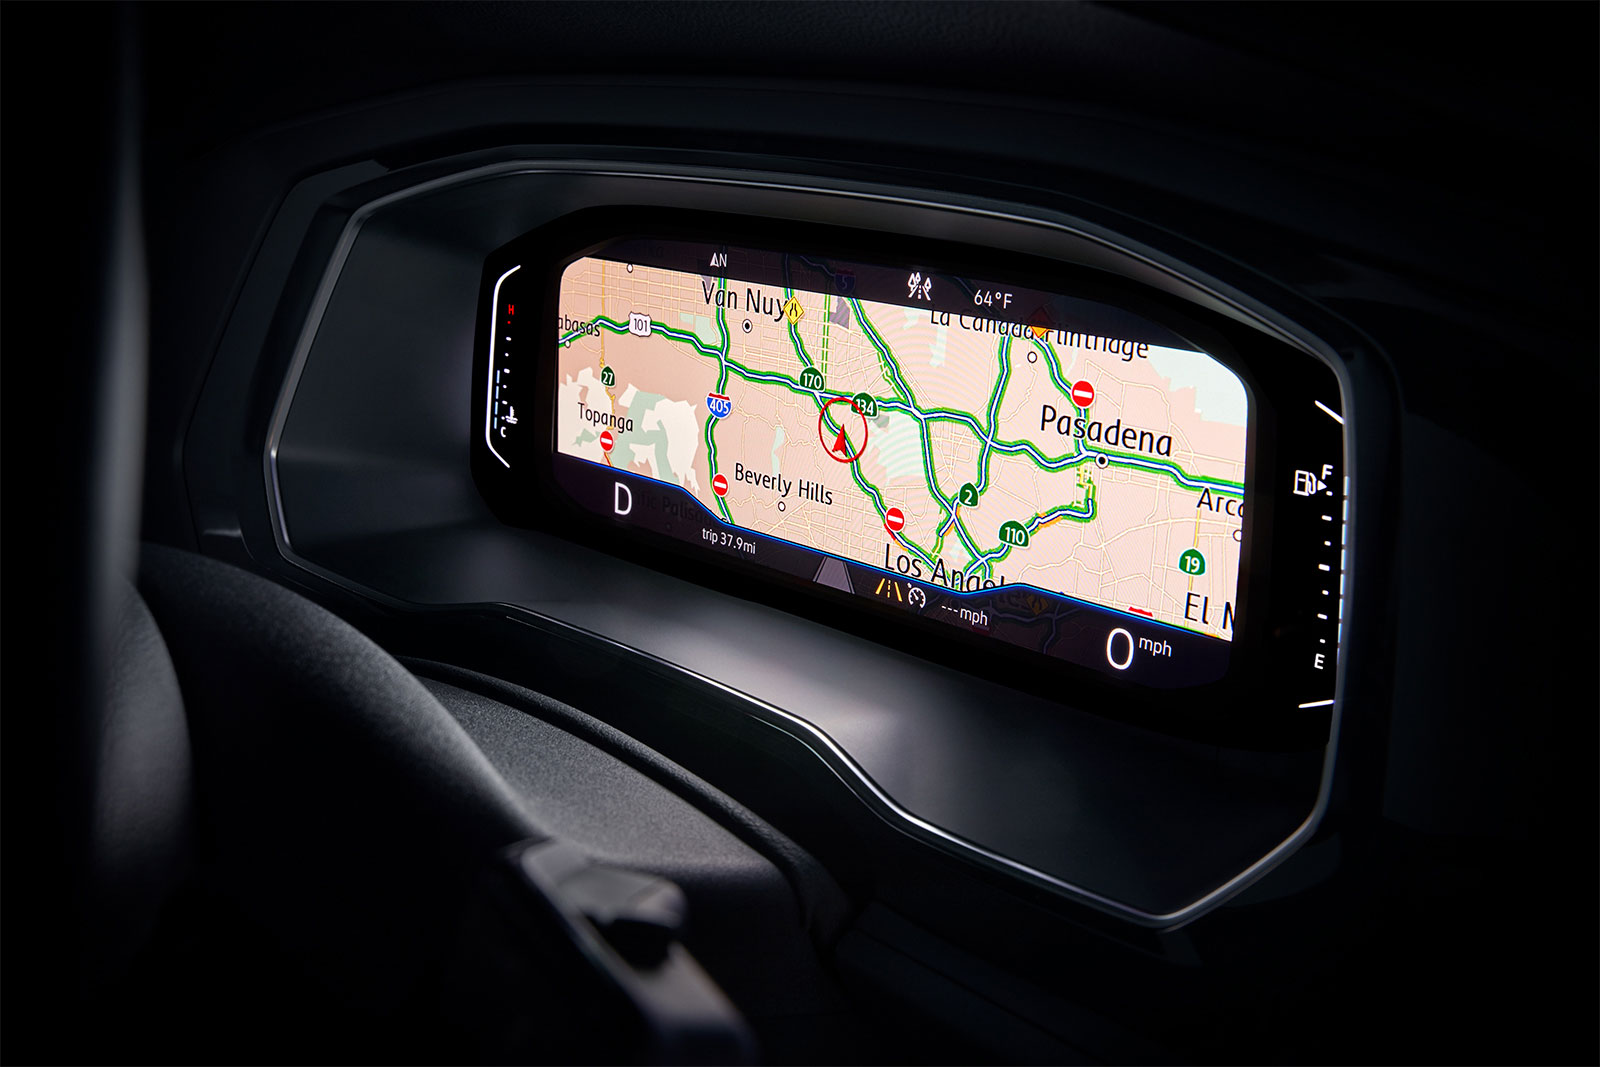 Navigation in the 2020 Jetta